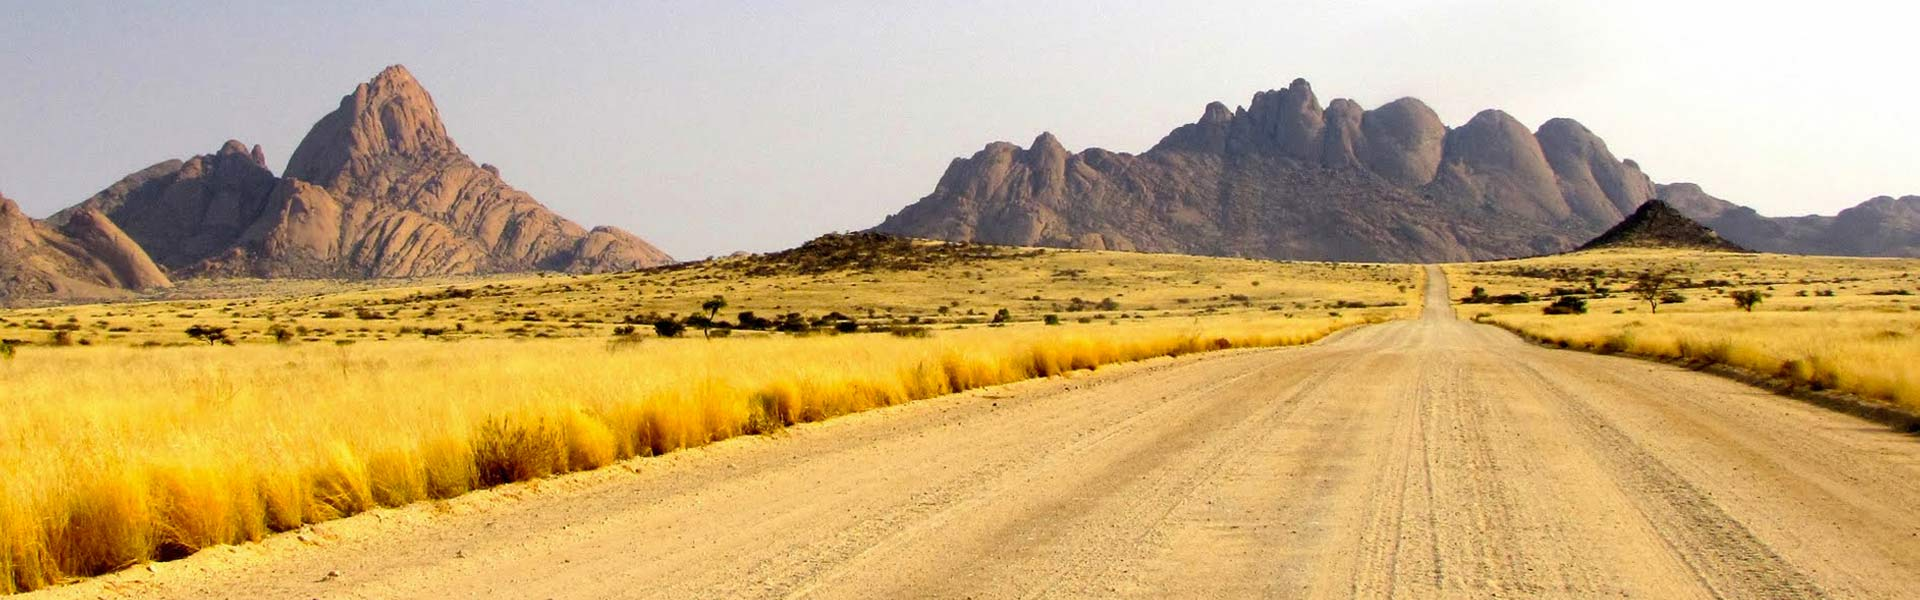 Namib desert road with the mountains of spitzkoppe ahead